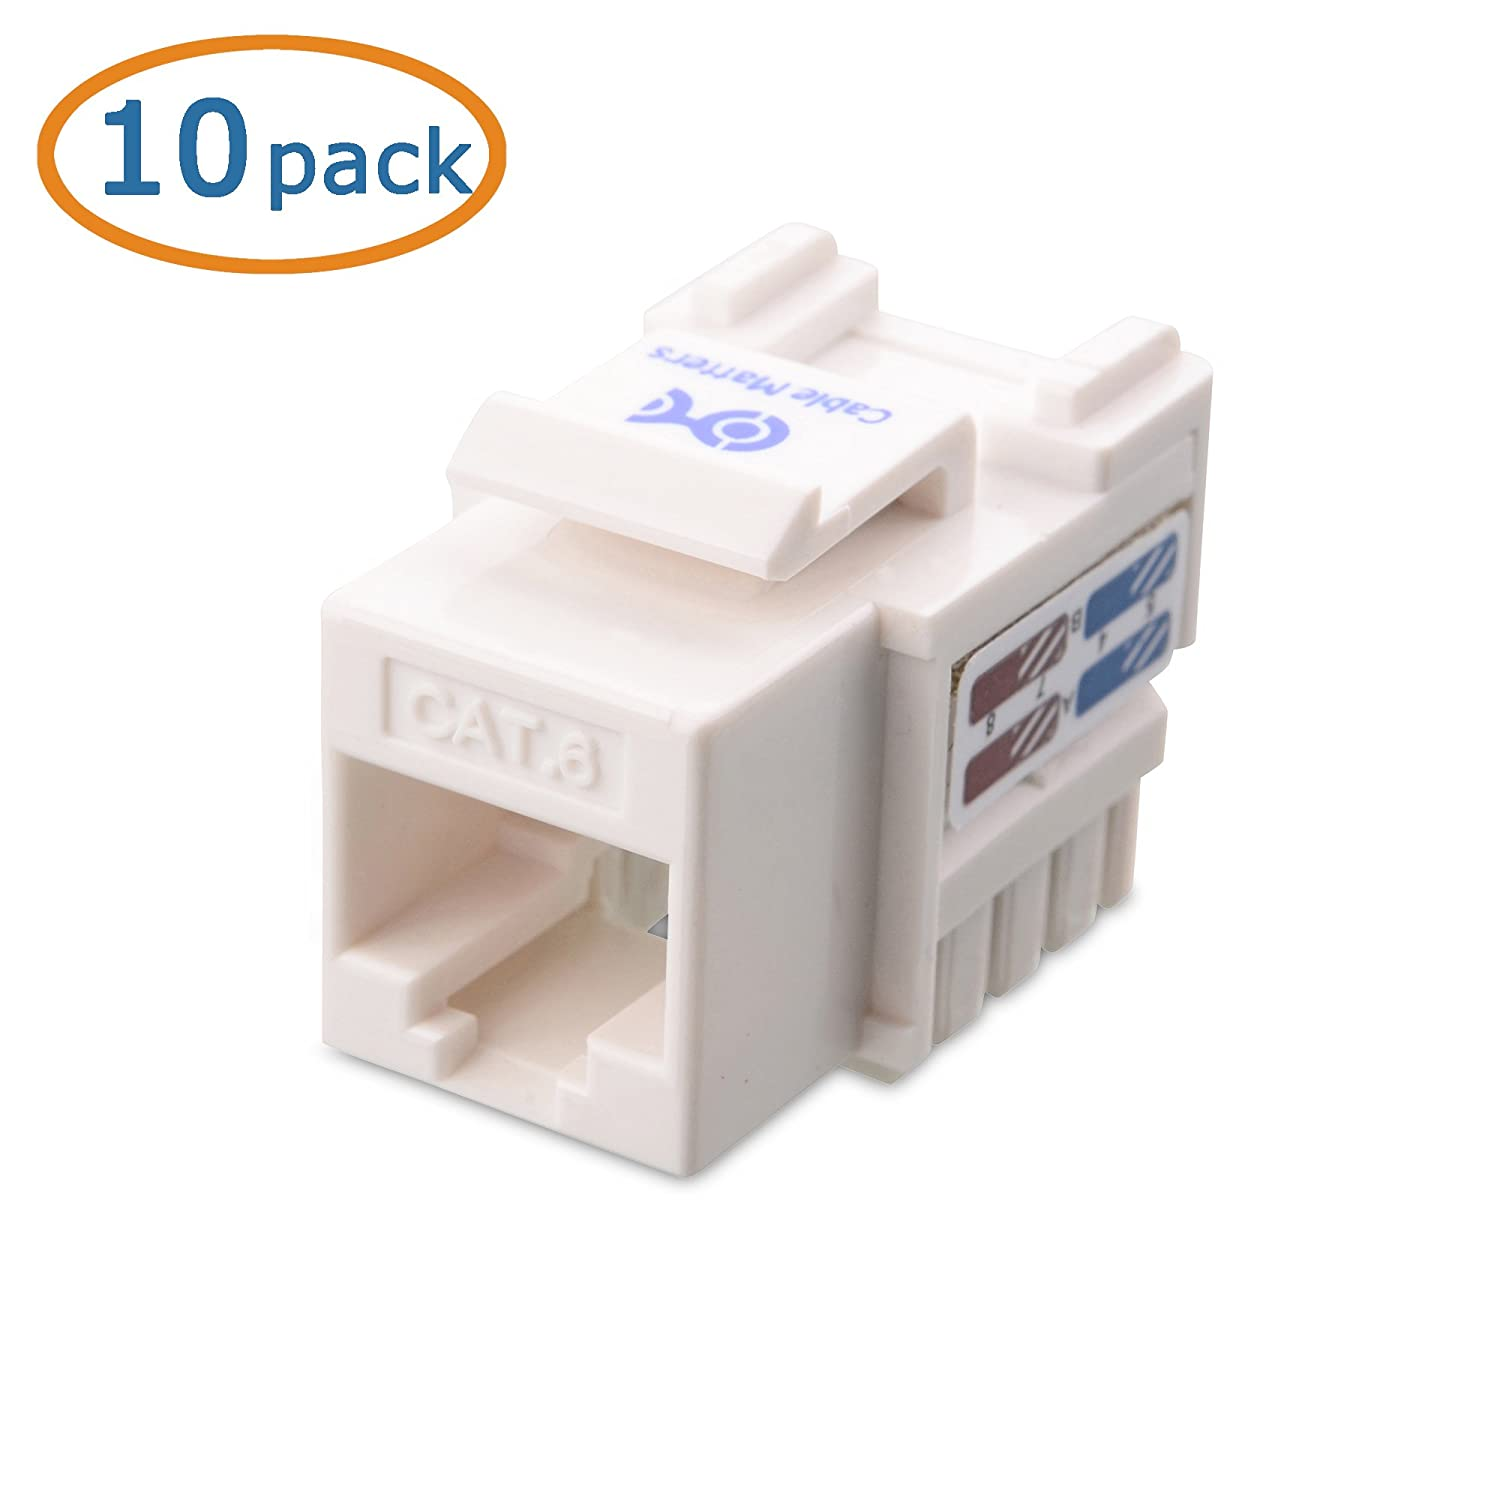 Ul Listed Cable Matters 10 Pack Cat6 Rj45 Keystone Wiring Cat 6 Faceplate Jack In White Computers Accessories